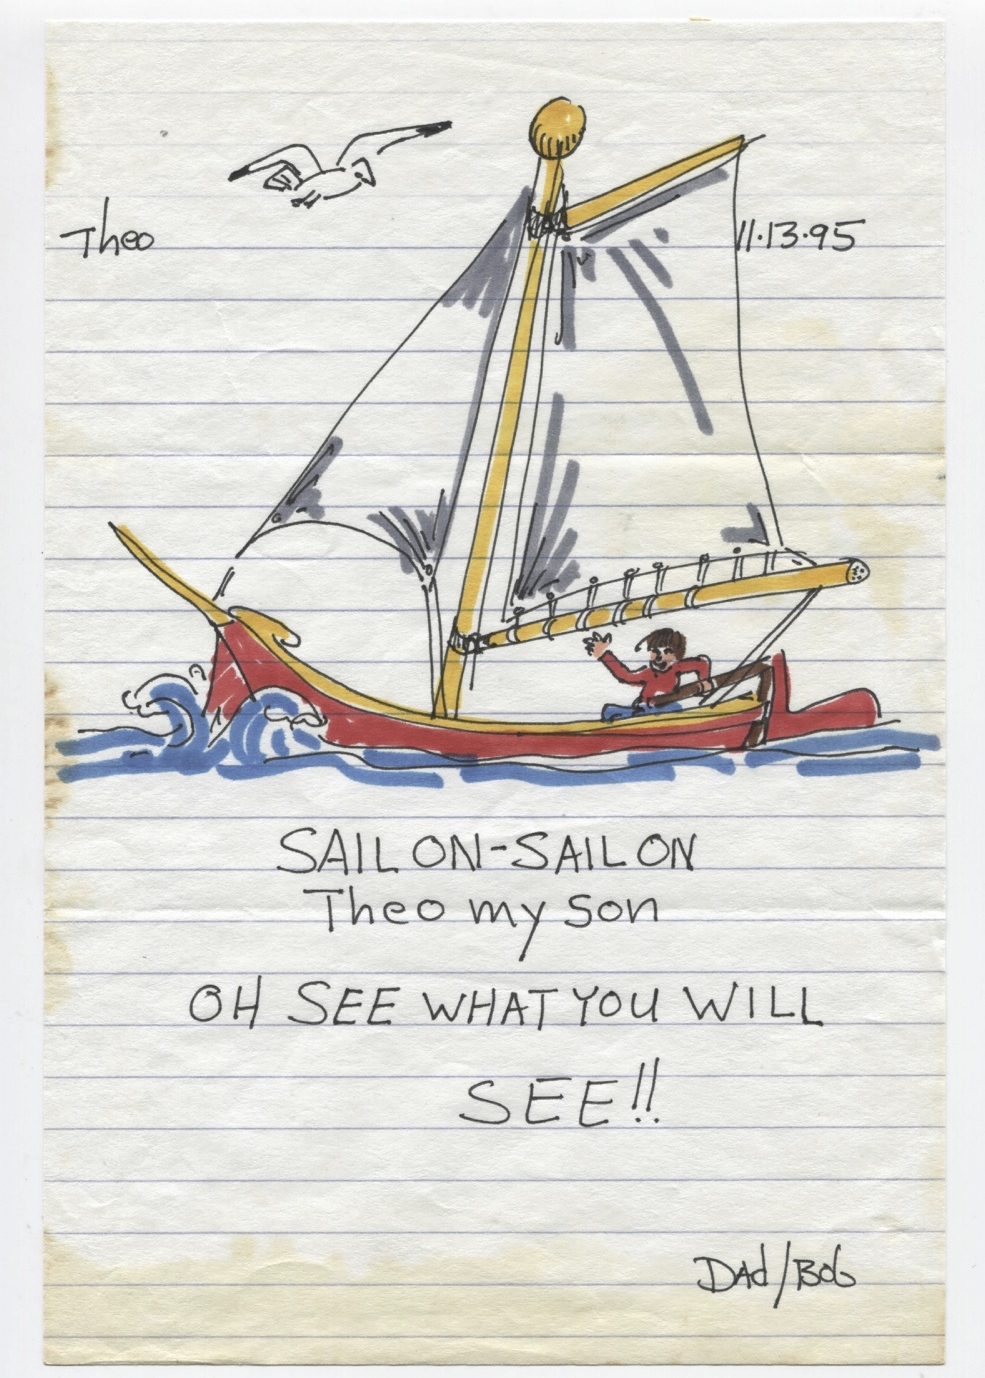 Sail on - Sail On Theo my son. Oh see what you will see!!